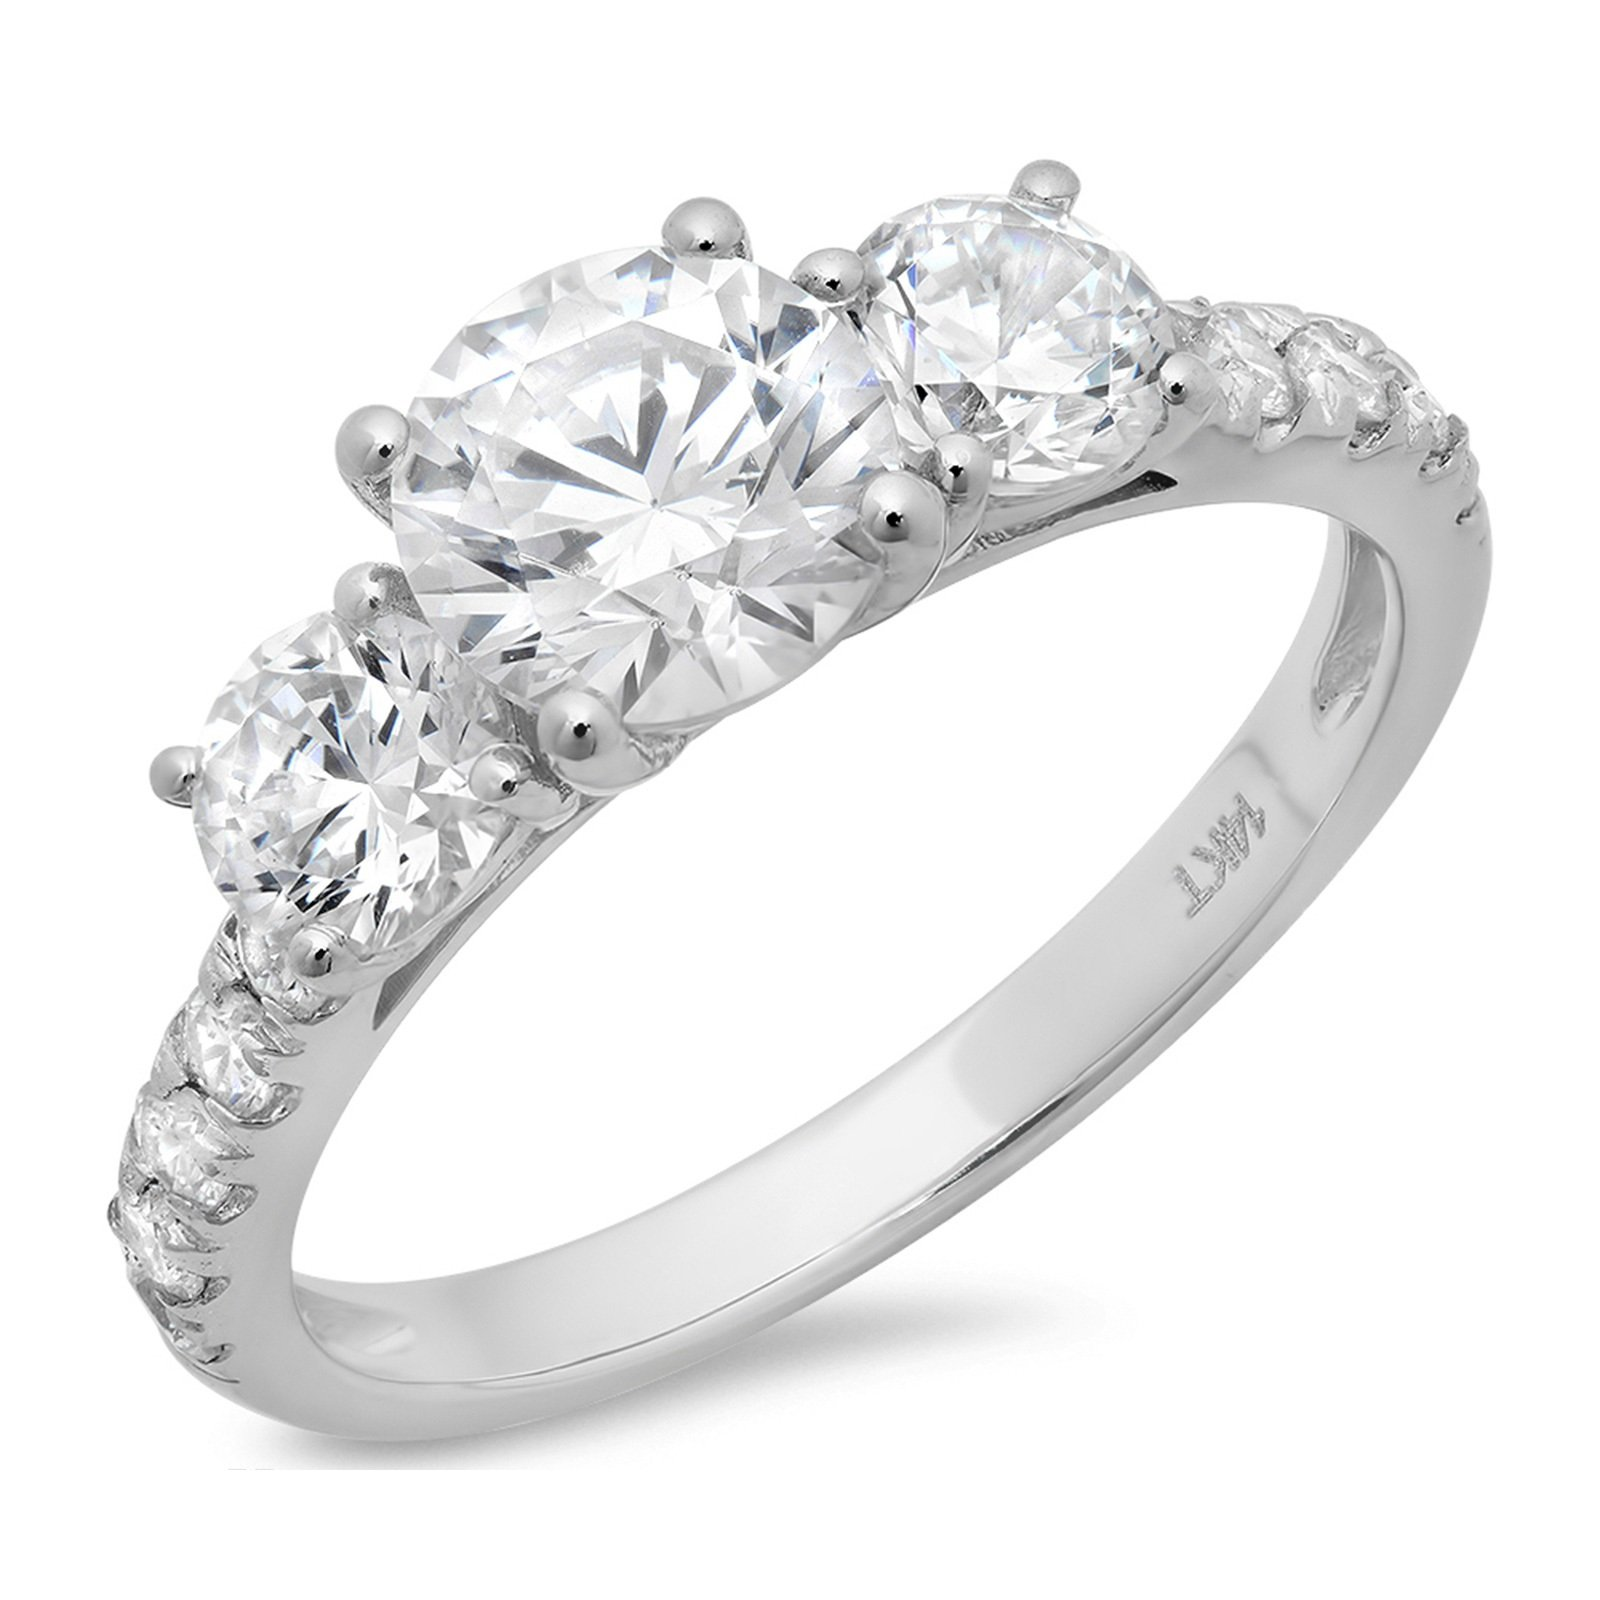 Clara Pucci 1.9 CT Round Cut CZ Pave Three Stone Accent Bridal Engagement Wedding Band Ring 14K White Gold, Size 9.5 by Clara Pucci